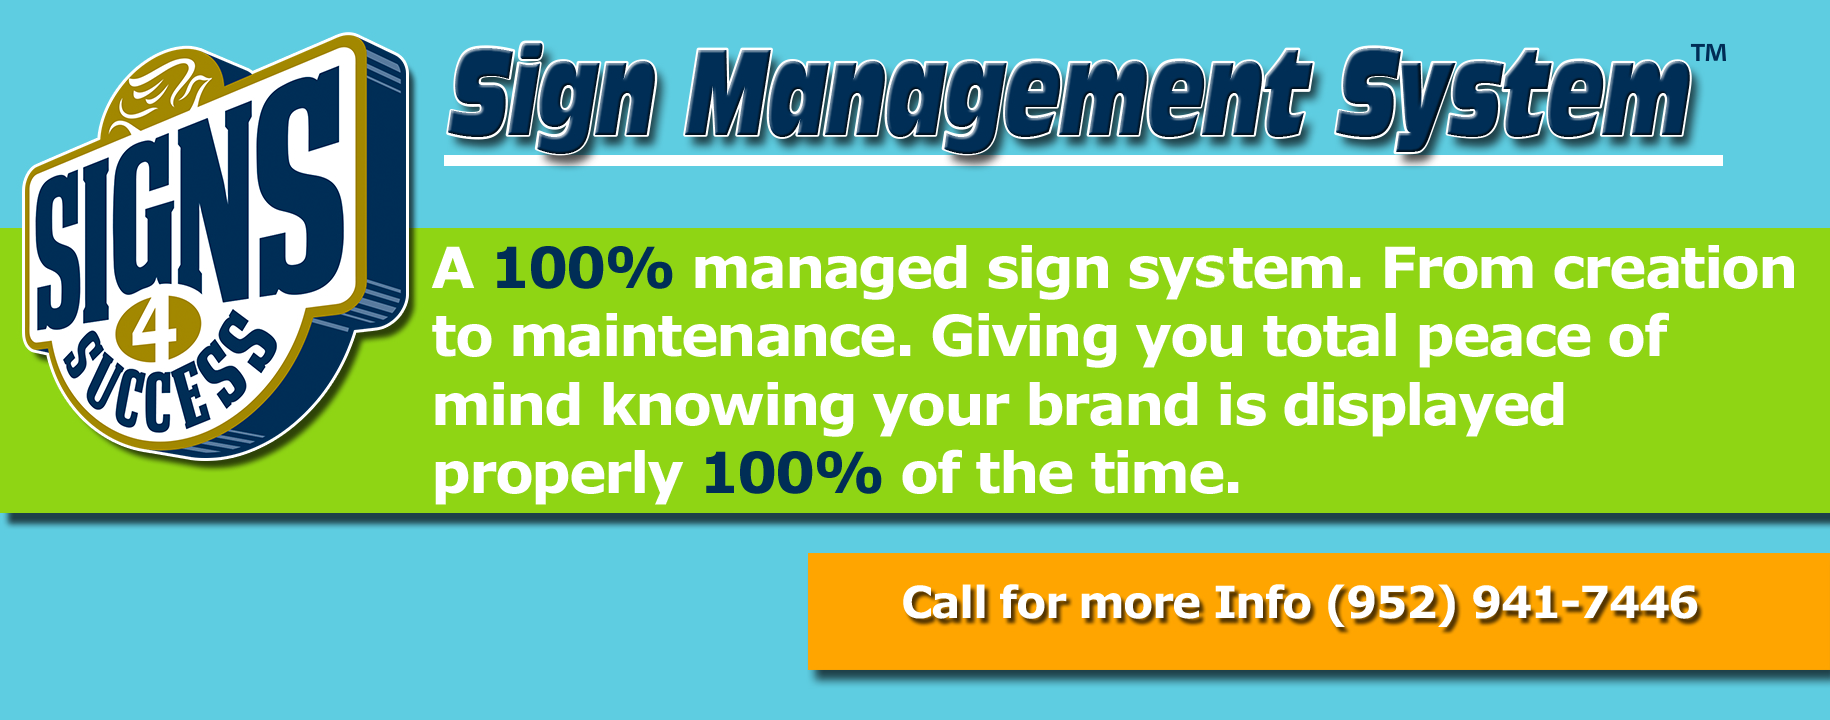 Our unique sign management system is great for property managers and real estate businesses